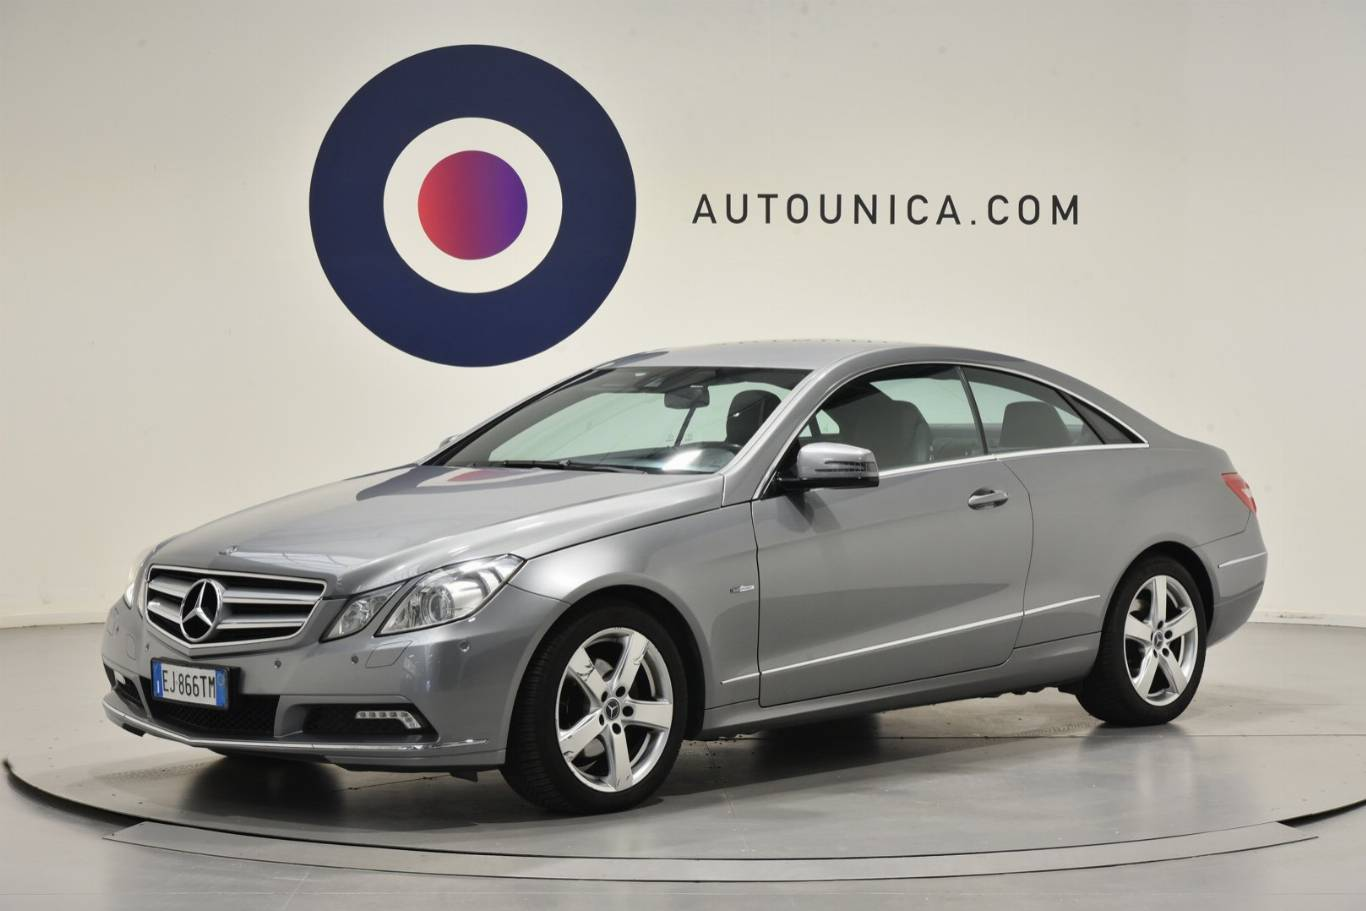 MERCEDES-BENZ - E 220 CDI COUPE' BLUEEFFICIENCY